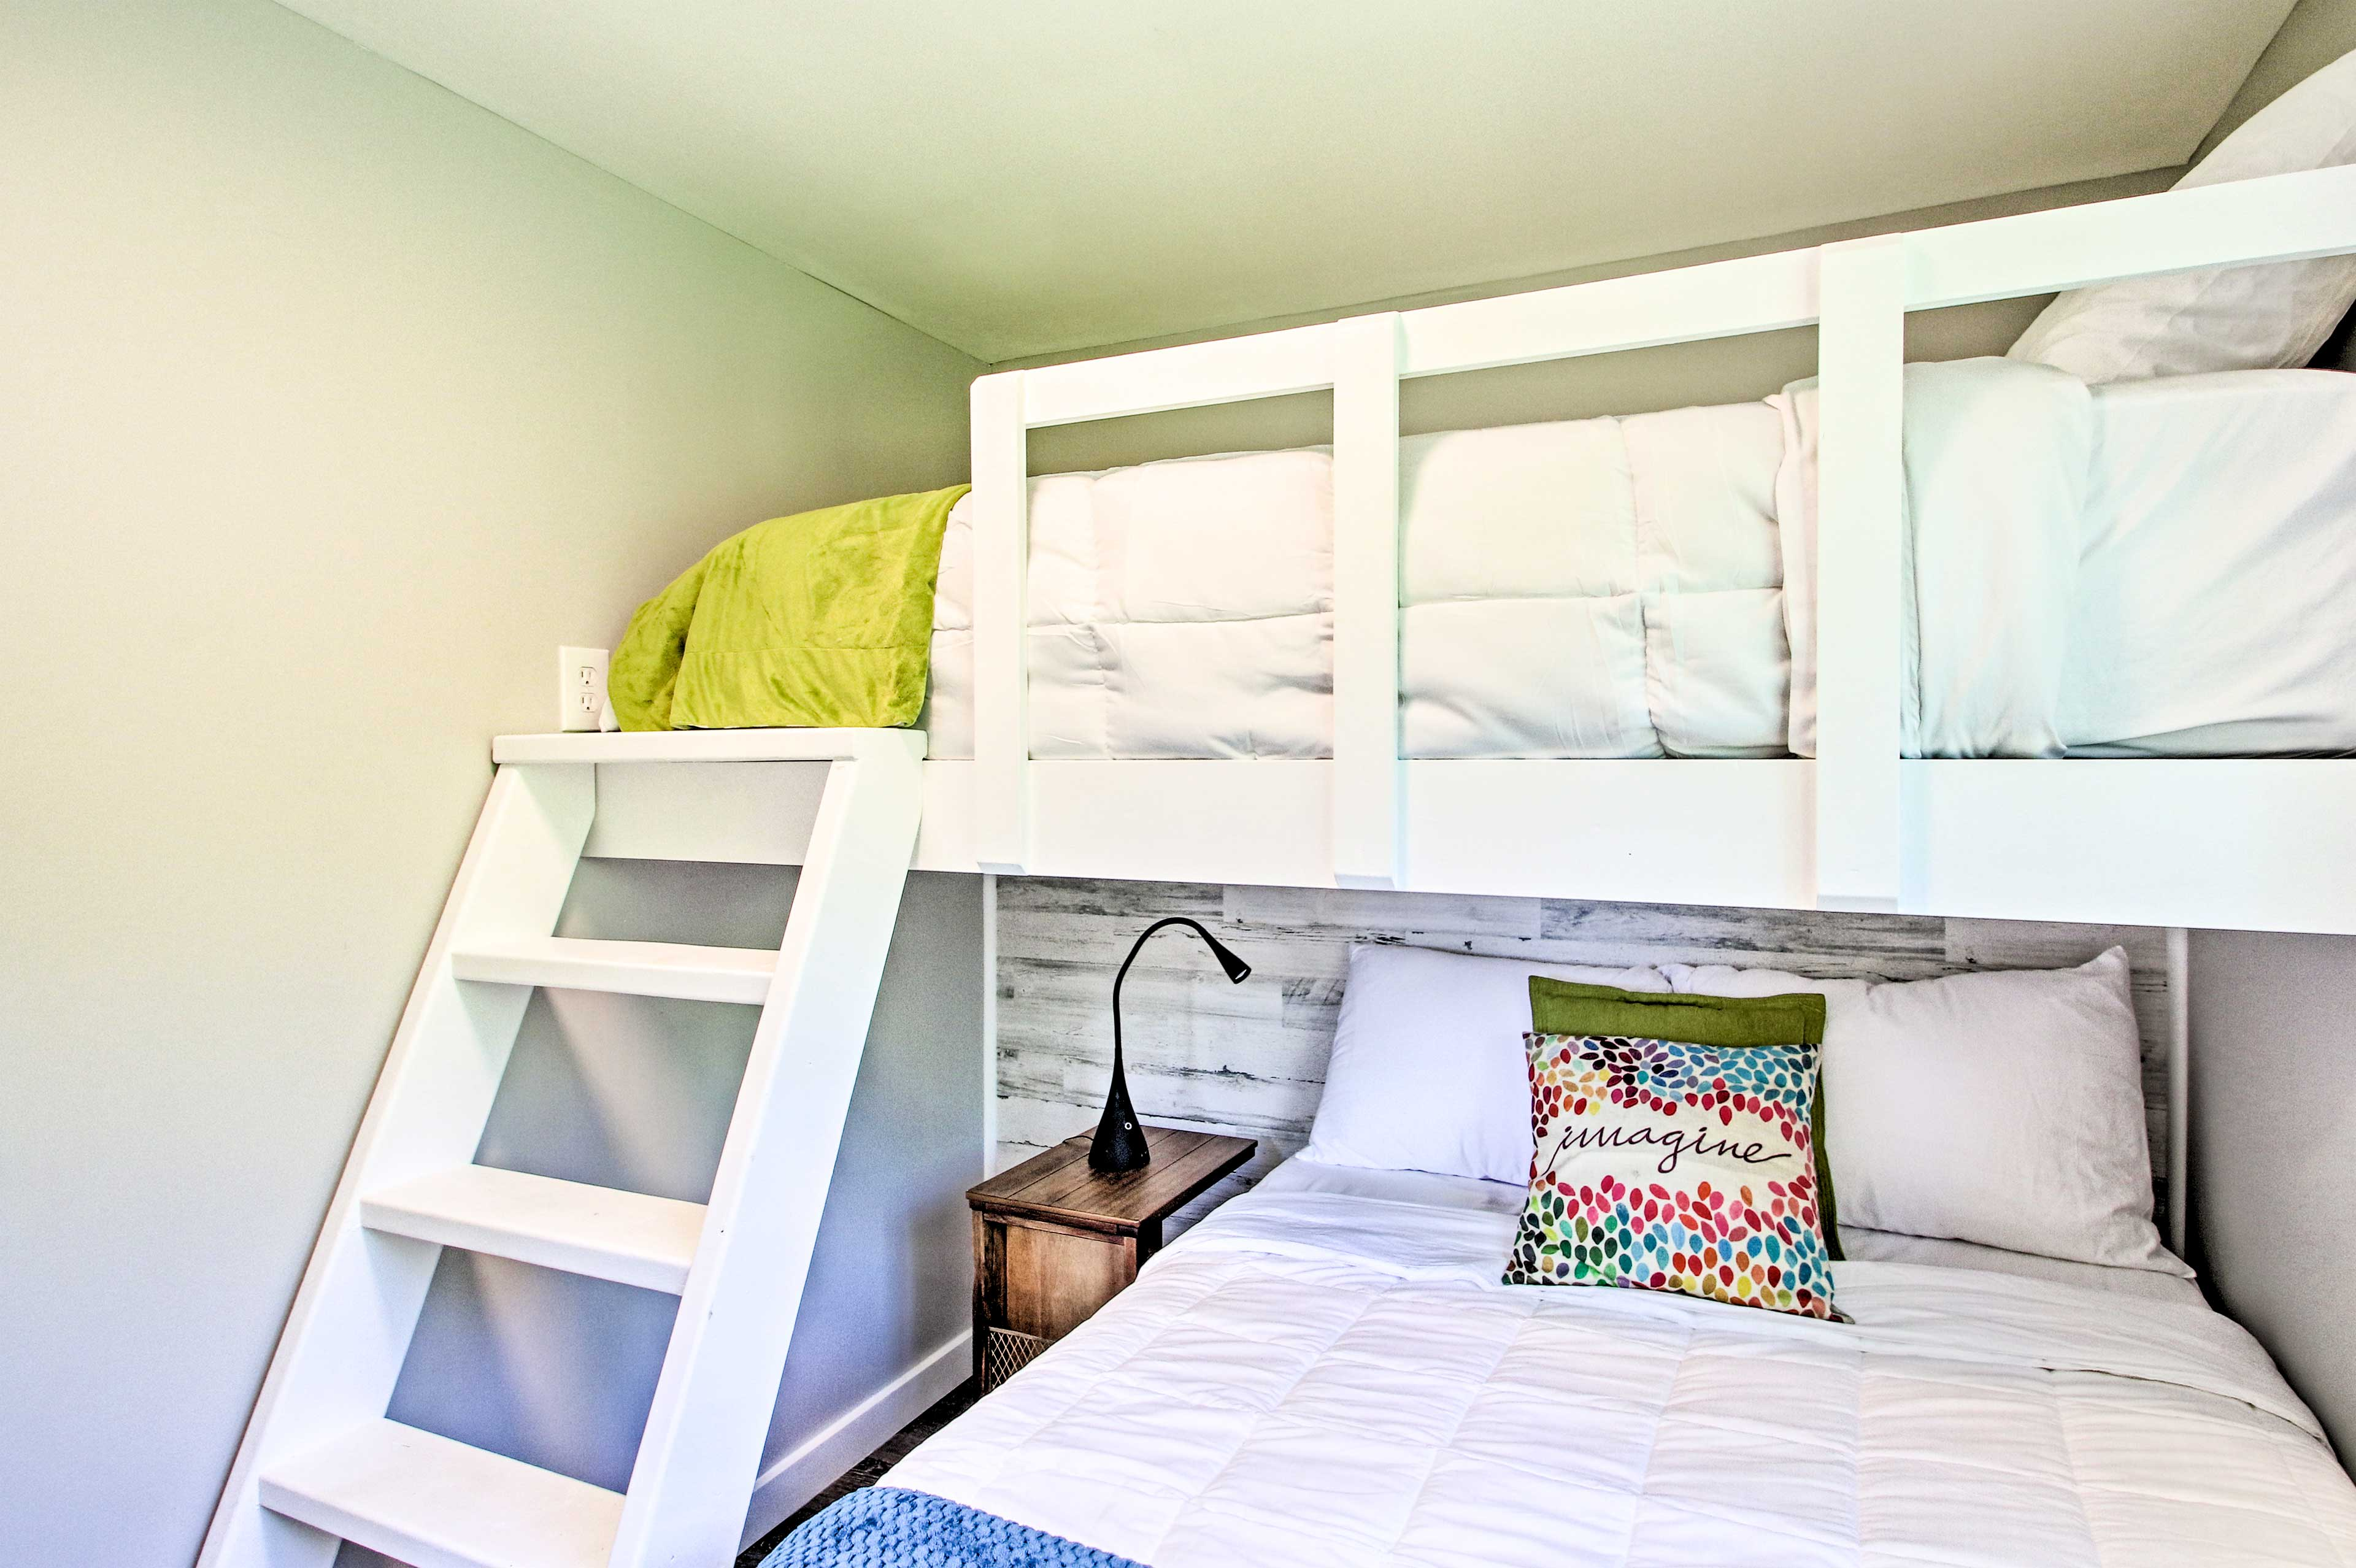 Up to 3 guests can snooze in the twin-over-full bunk bed.